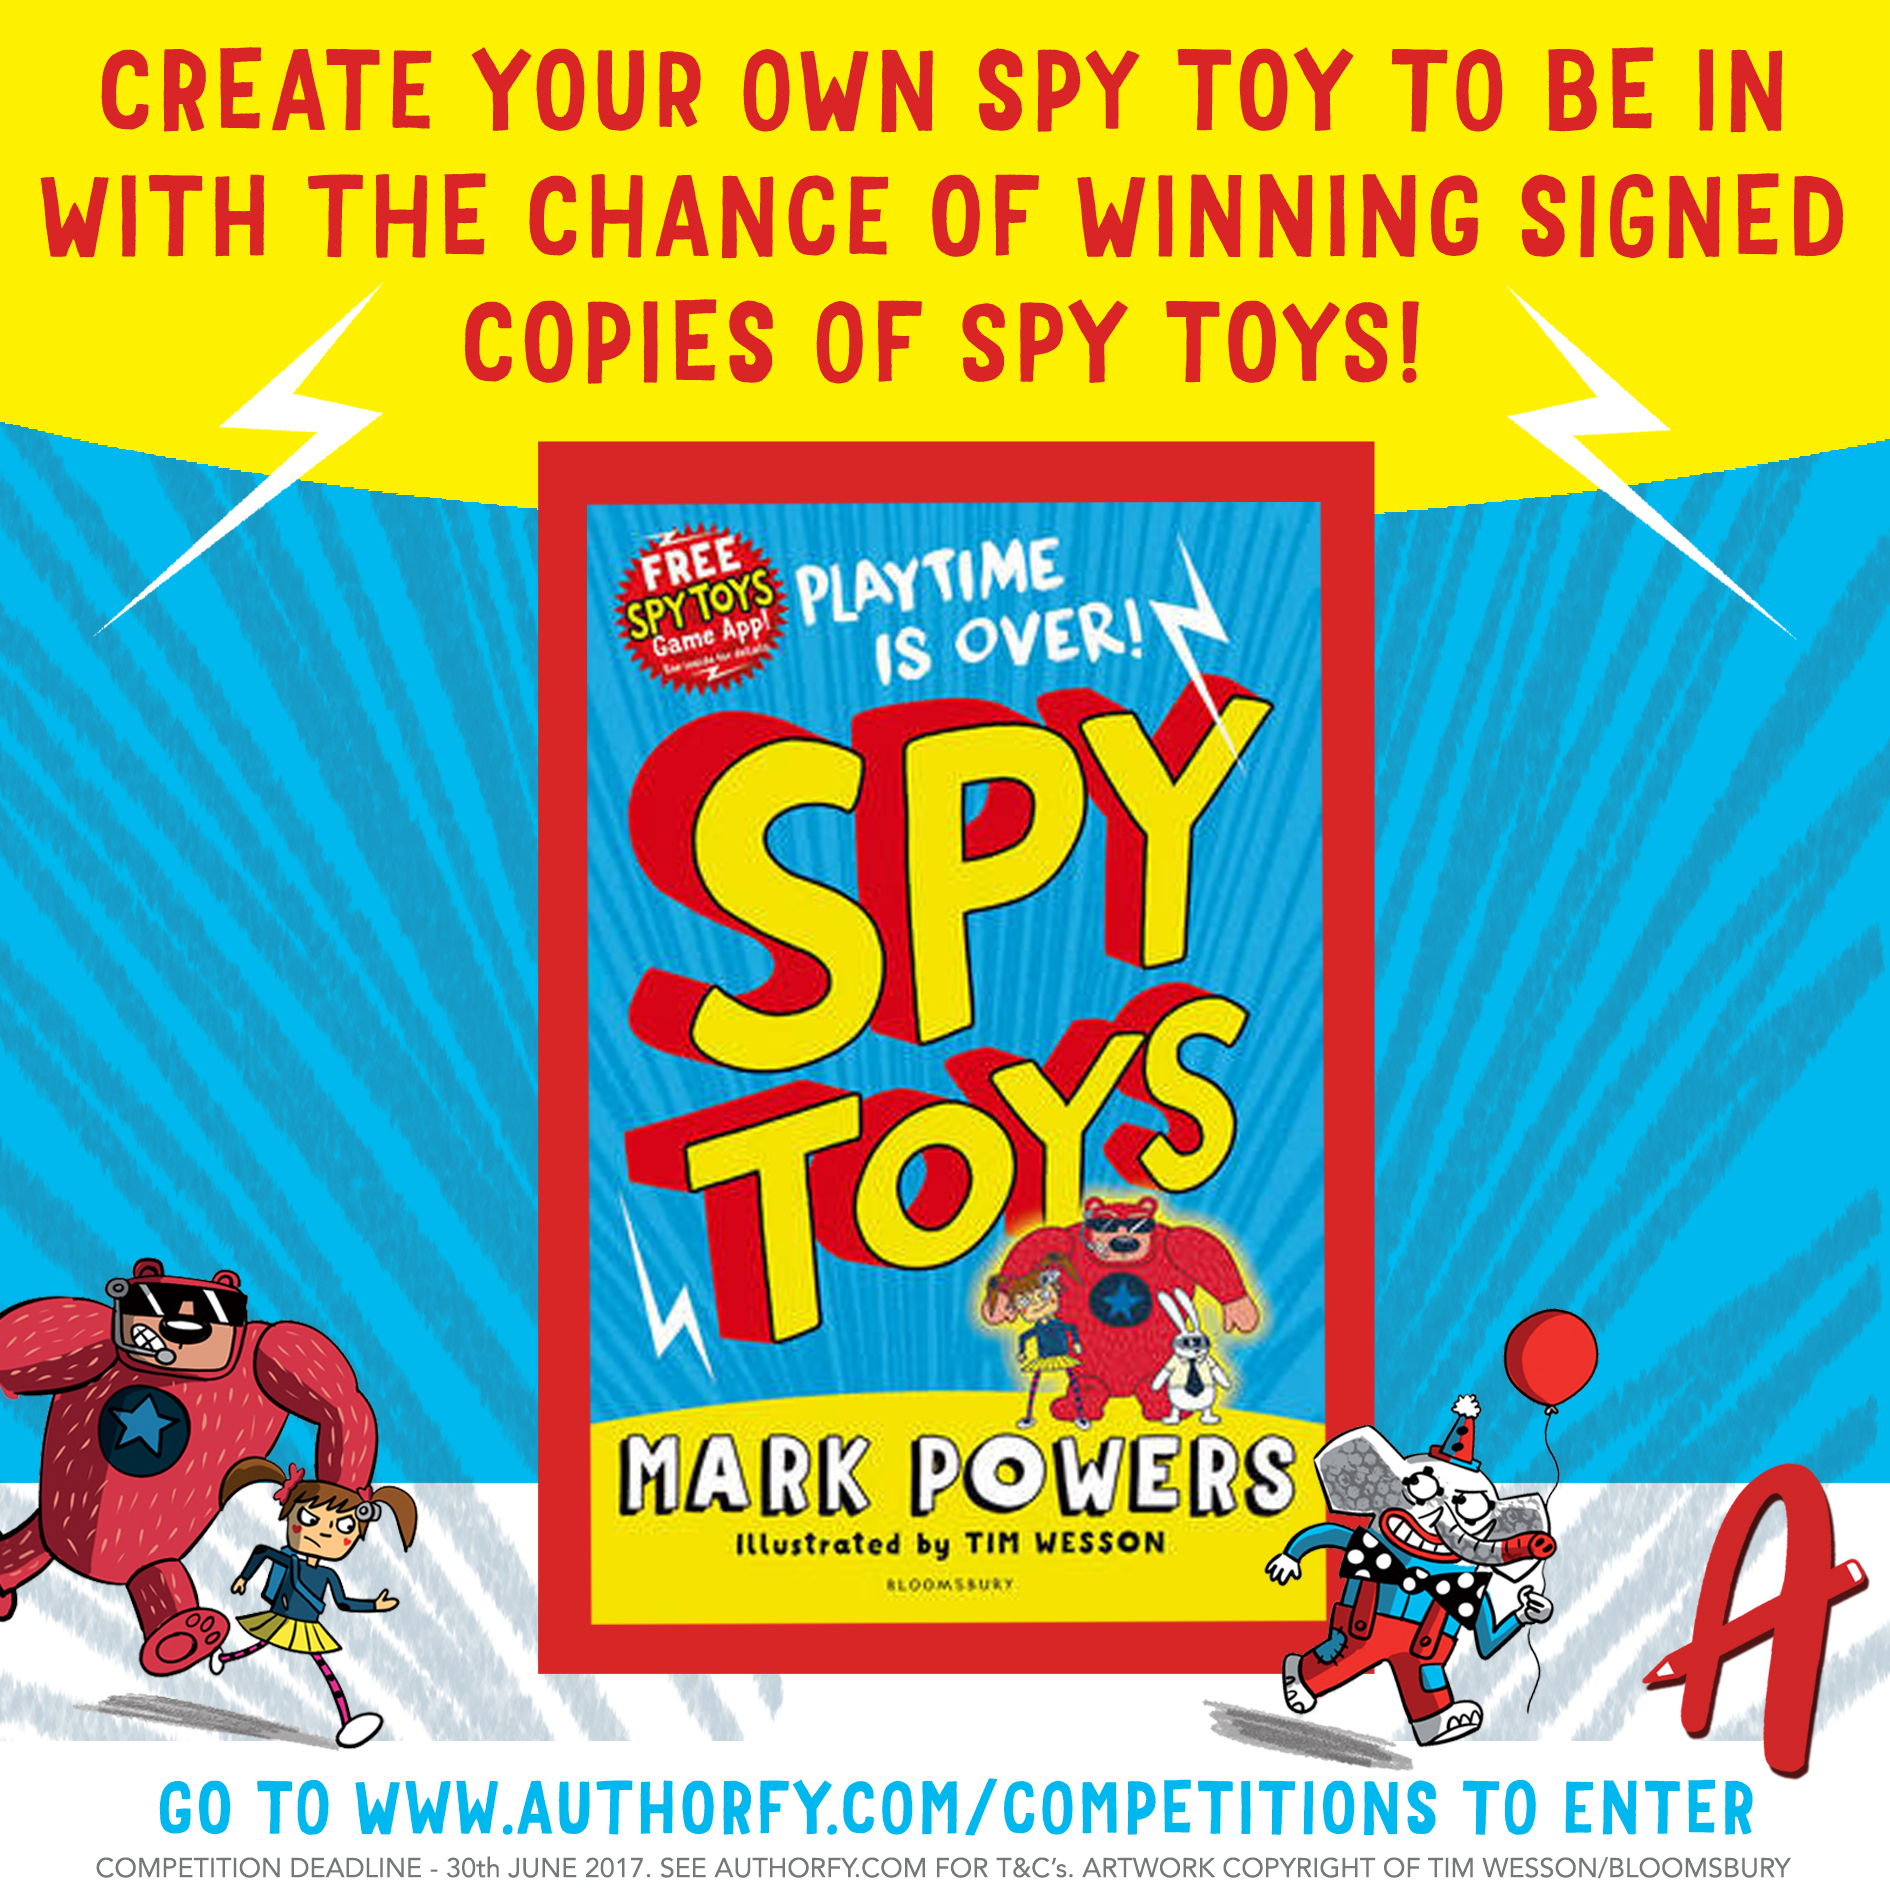 Create your own Spy Toy & win signed copies of Spy Toys authorfy